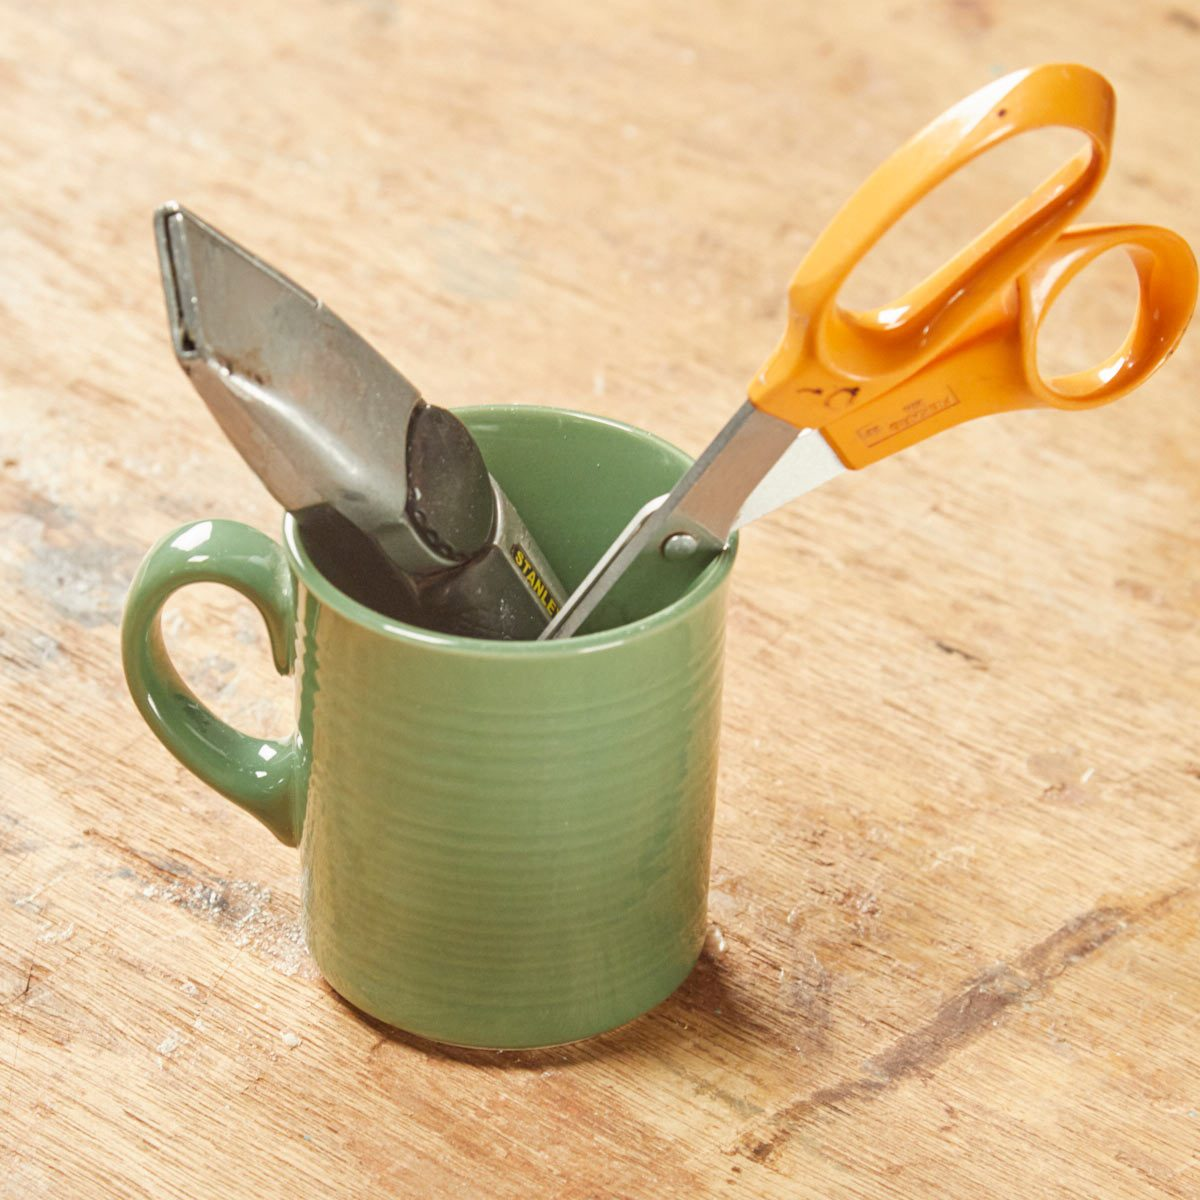 HH coffee mug sharpening scissors